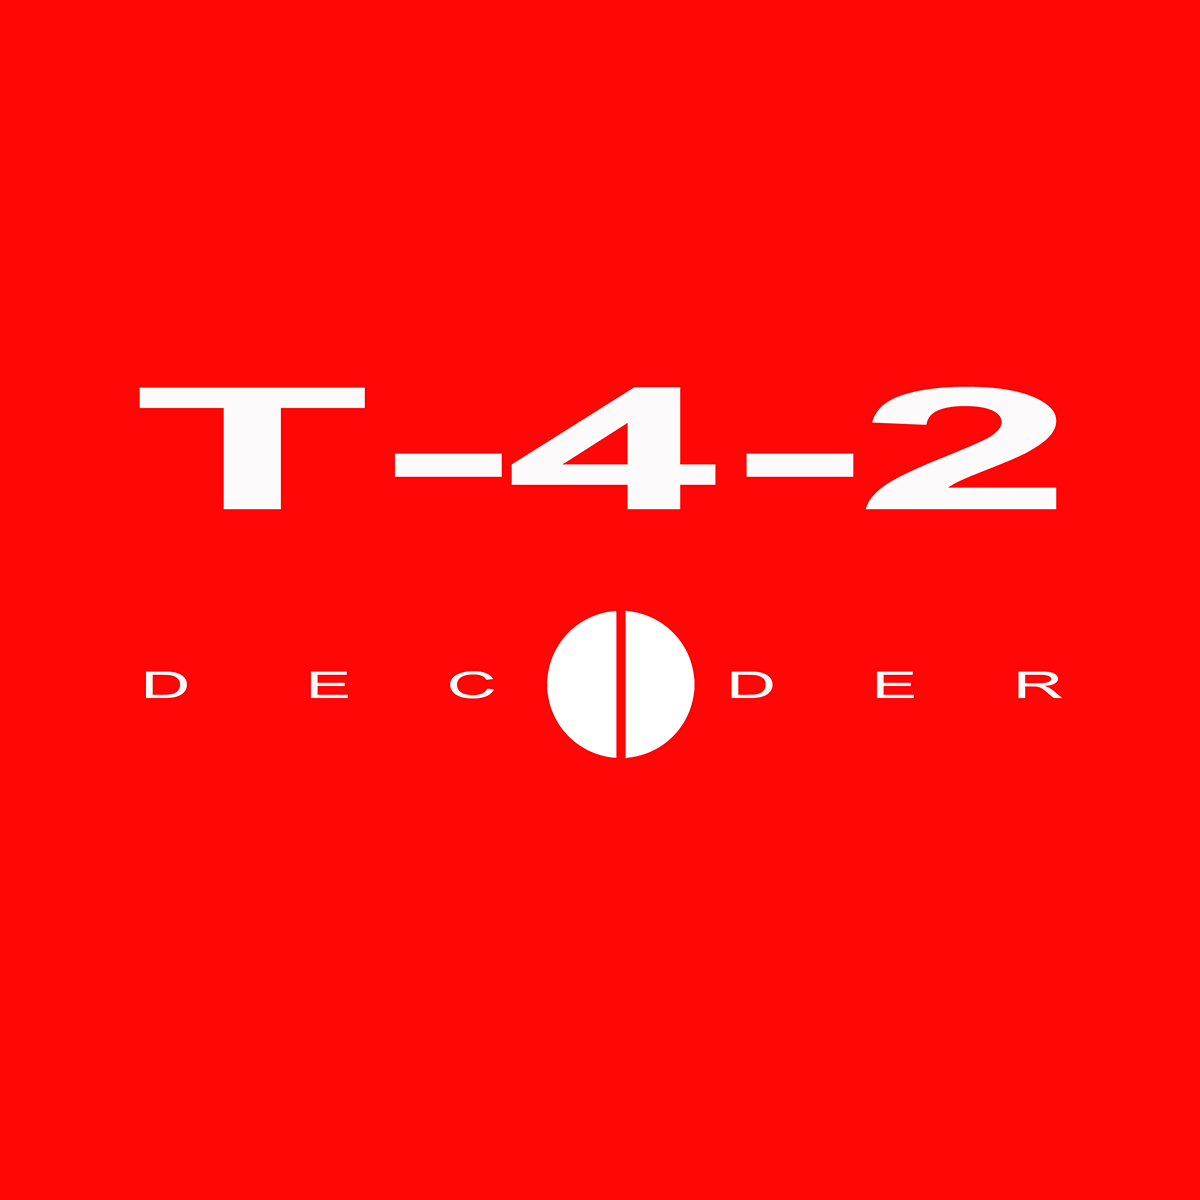 Decoder from T-4-2 Released